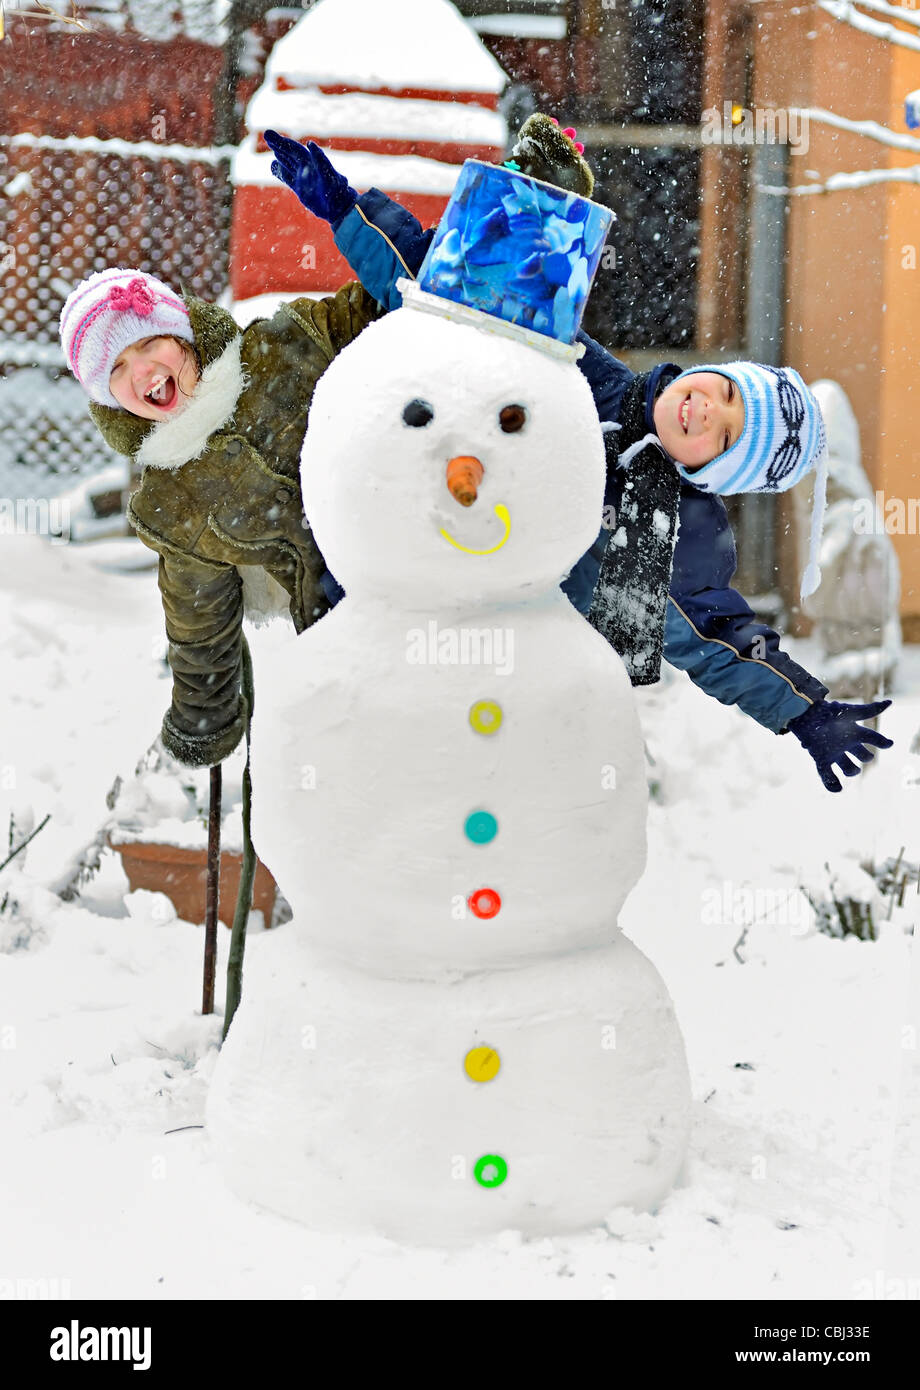 snowman and kids - Stock Image